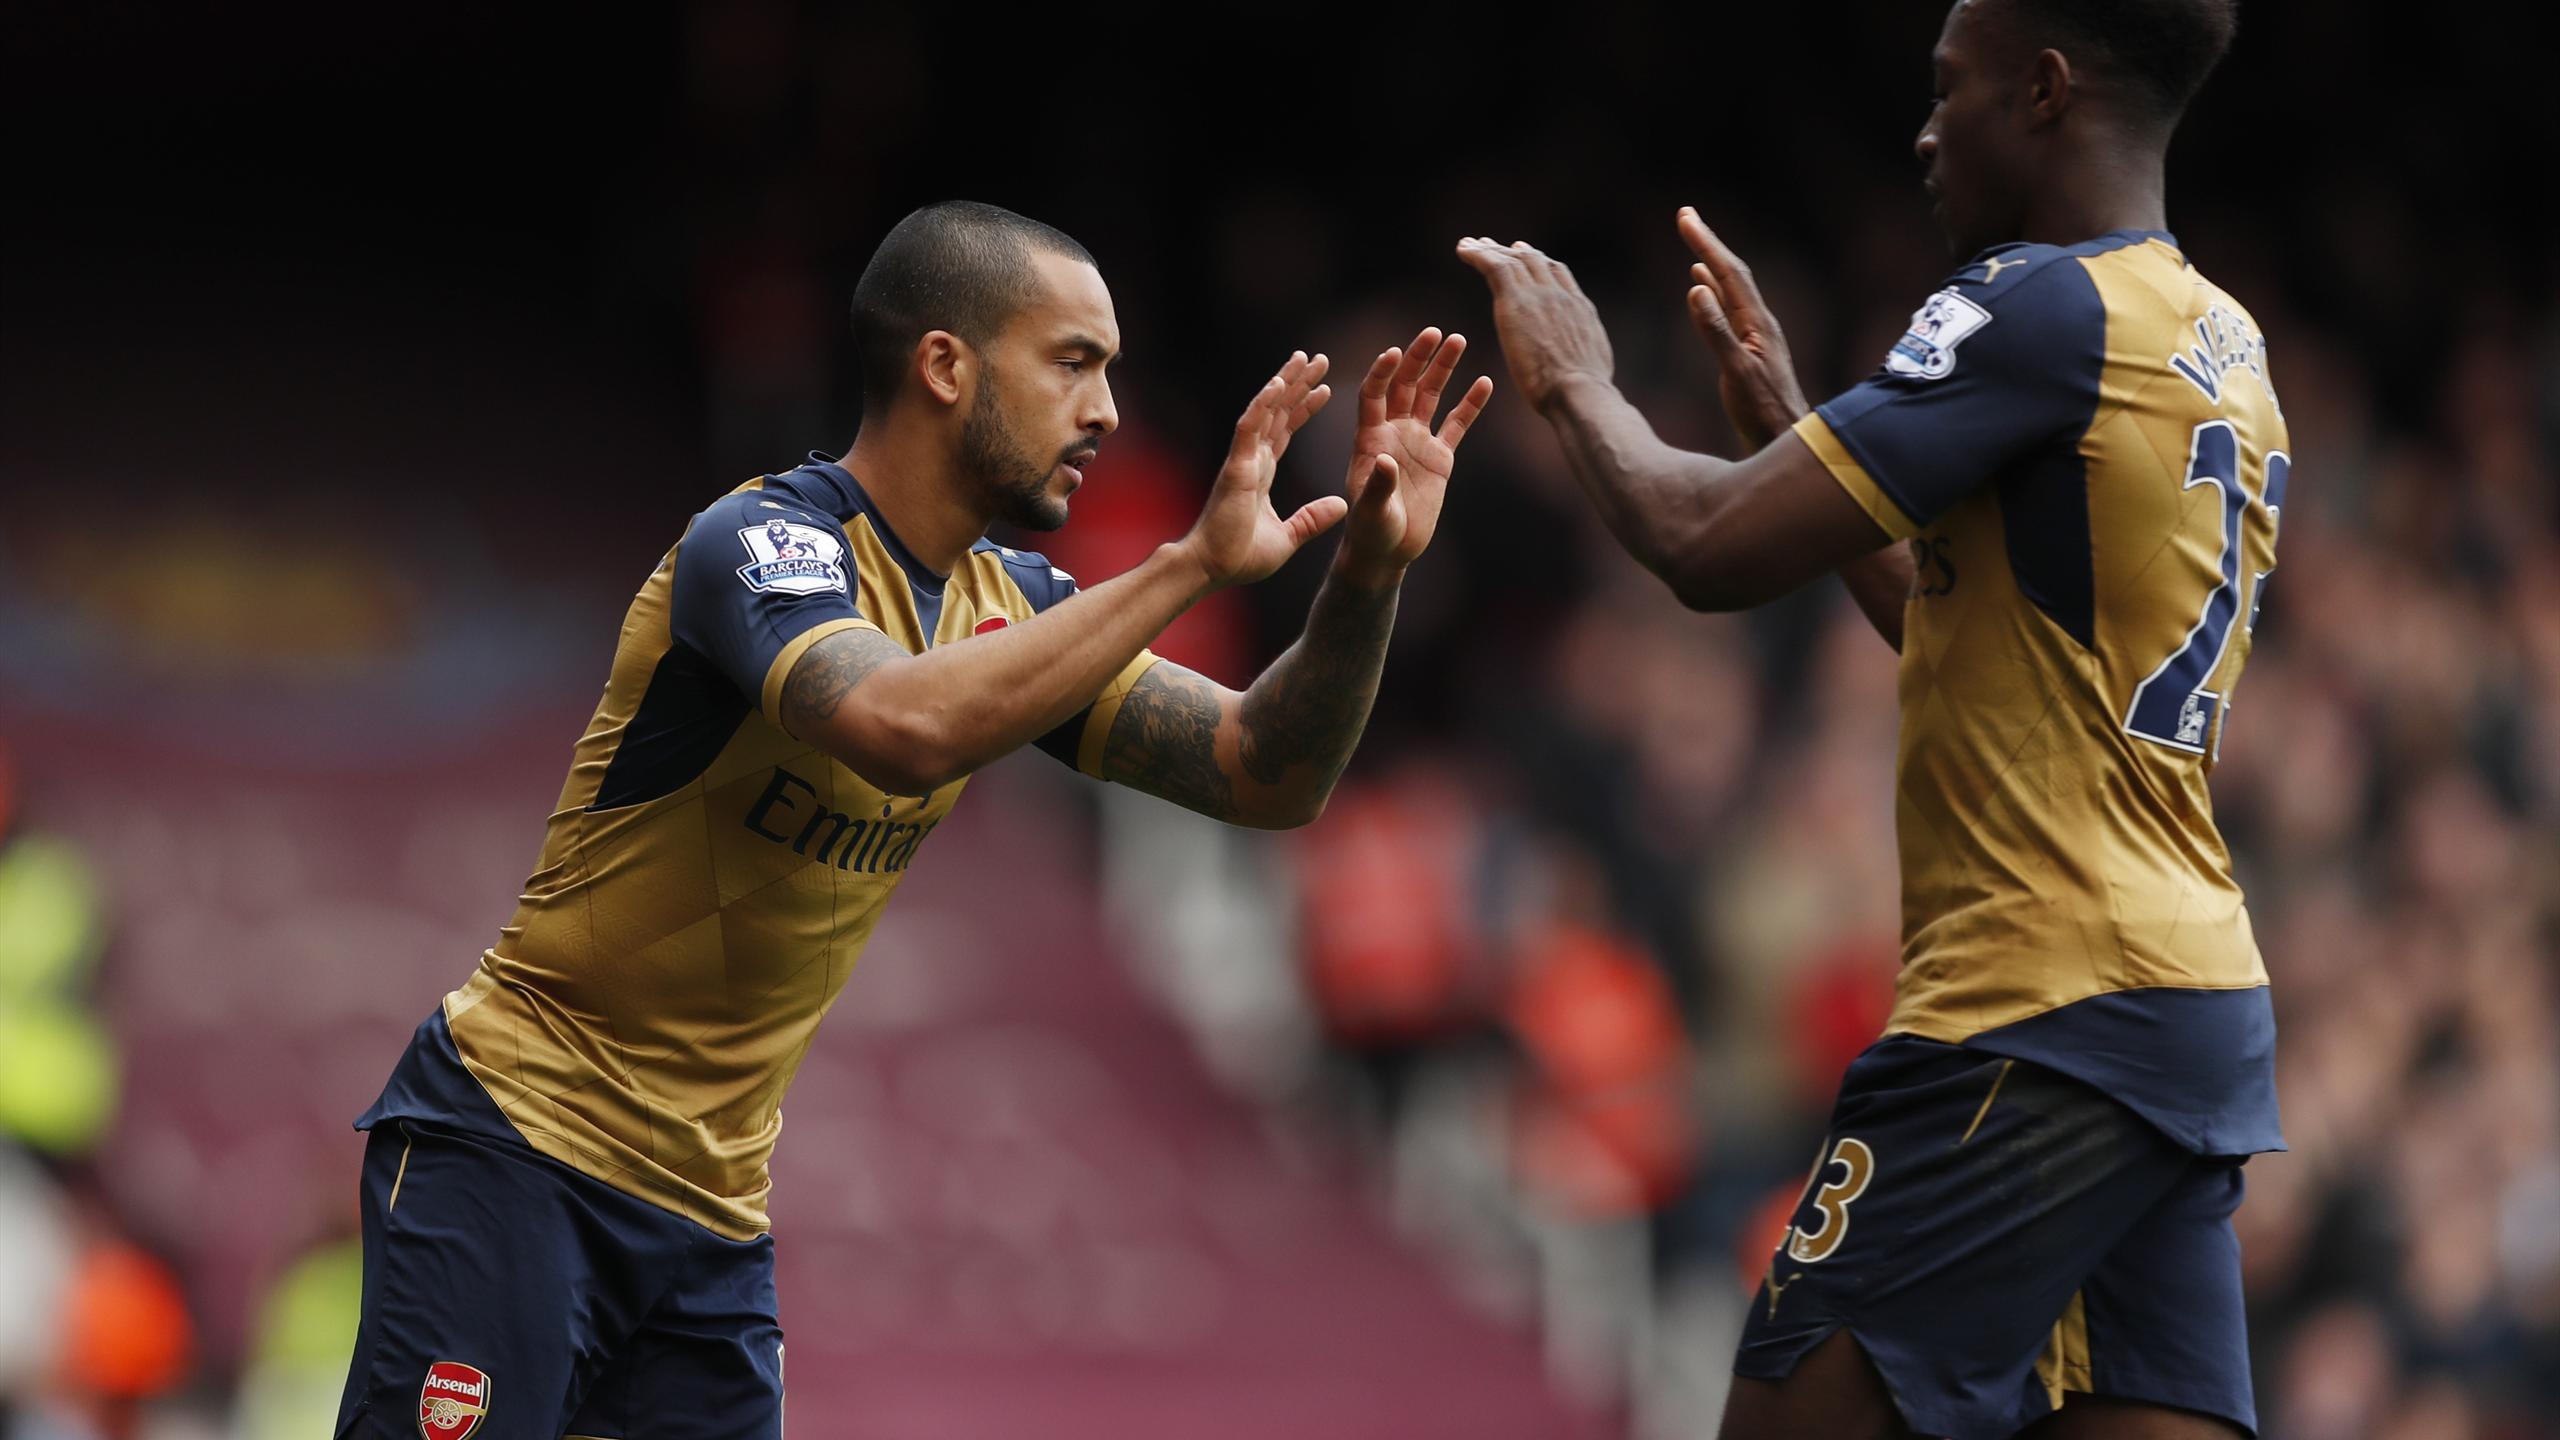 Arsenal's Theo Walcott comes on as substitute for Danny Welbeck